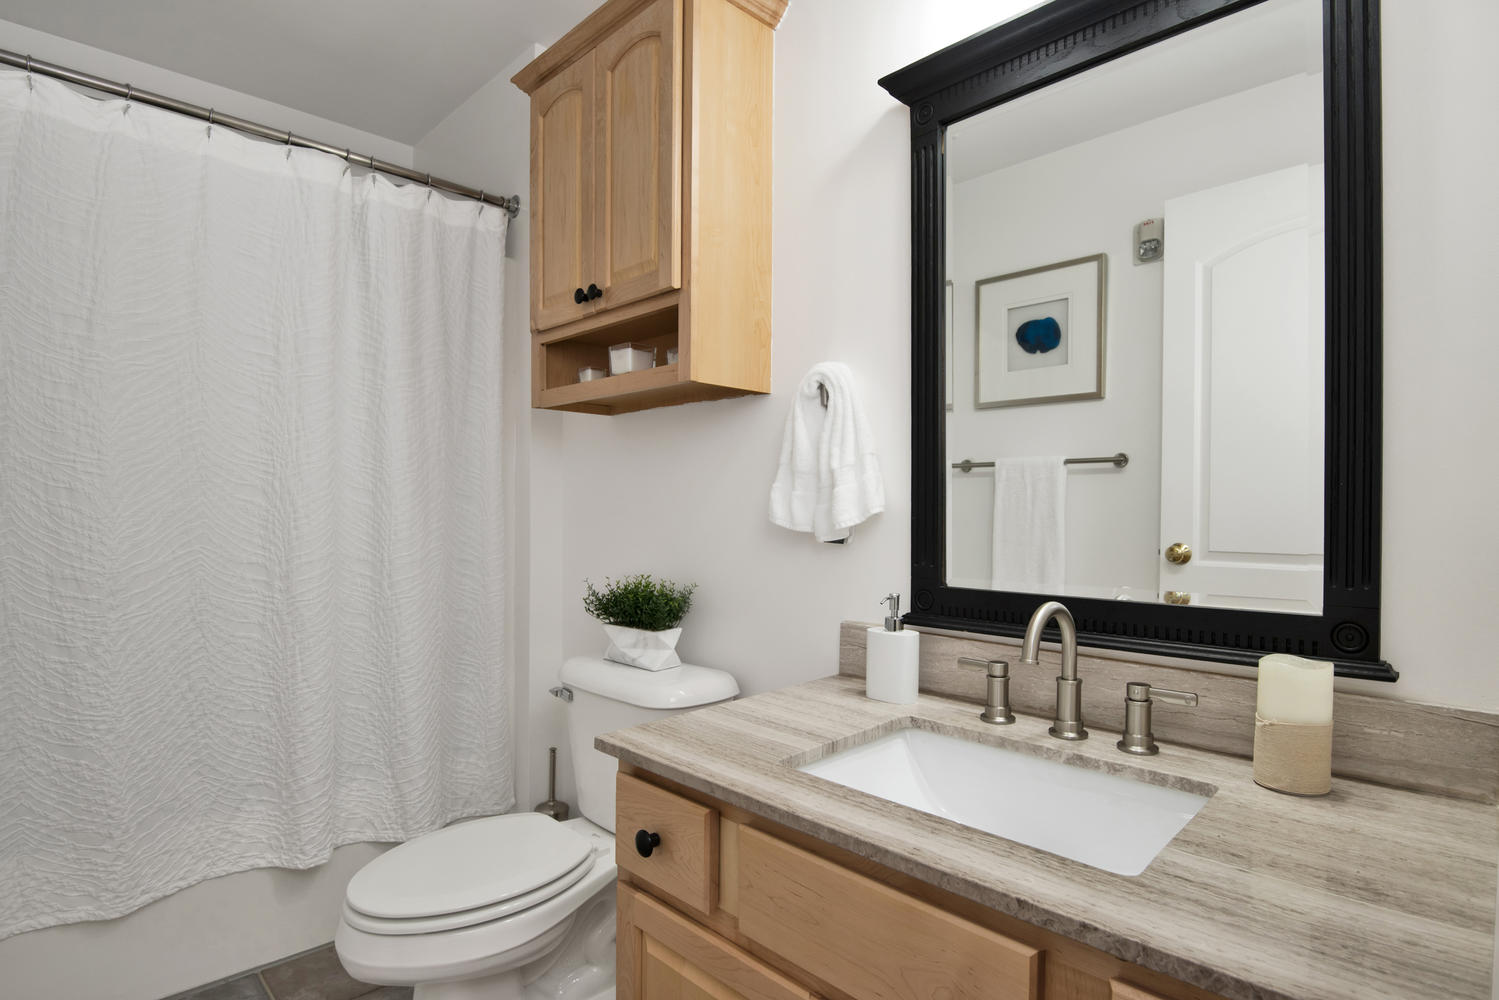 7 Camperdown Elm Dr-large-024-18-Bathroom-1499x1000-72dpi.jpg